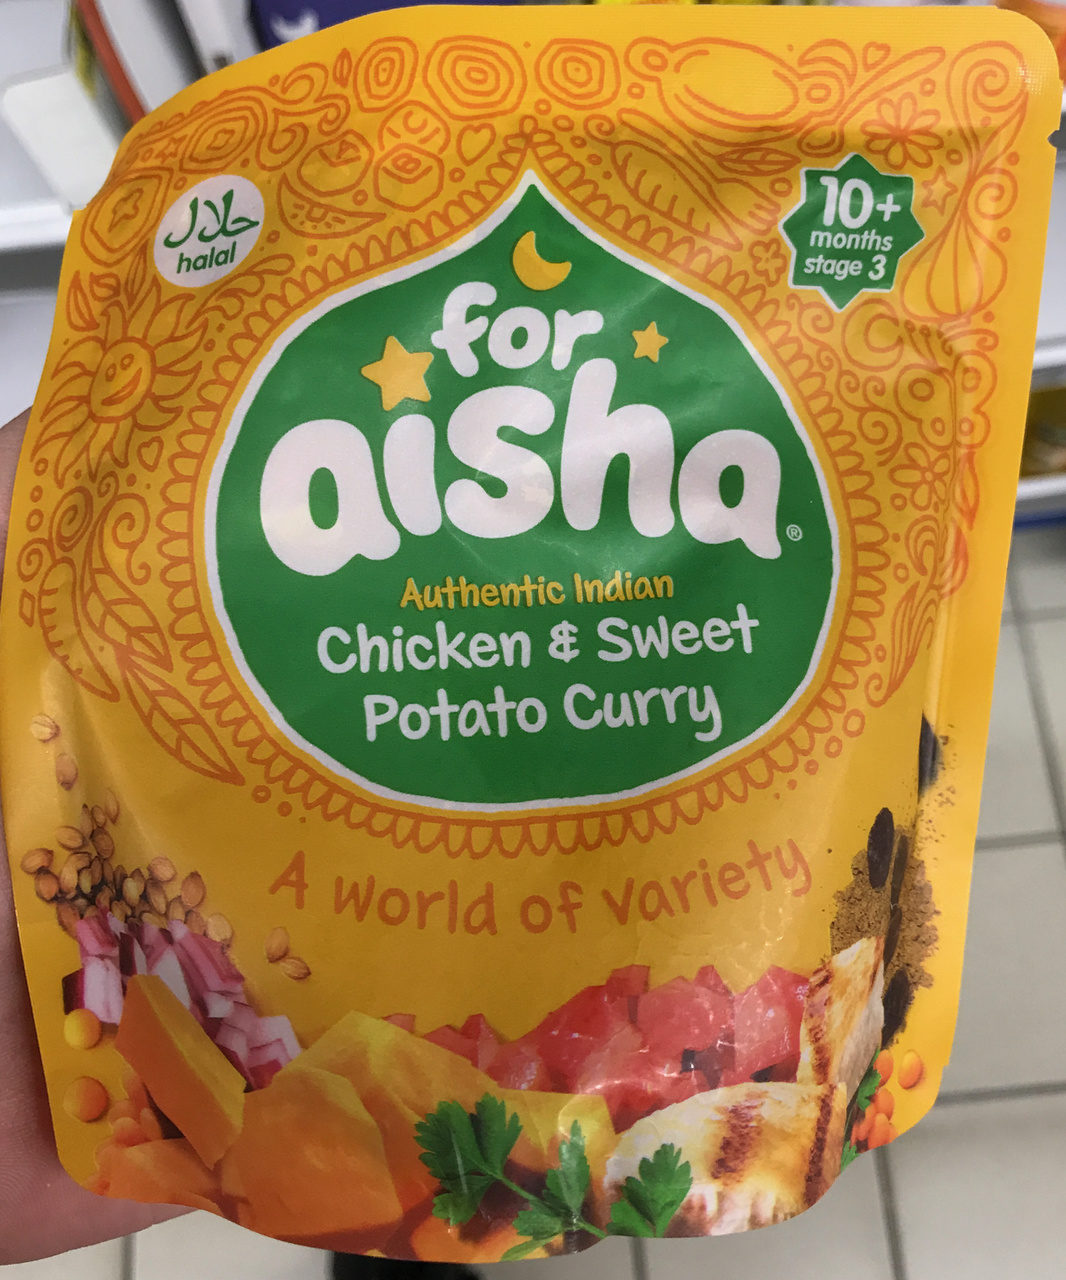 Authentic Indian Chicken & Sweet Potato Curry - Produit - fr